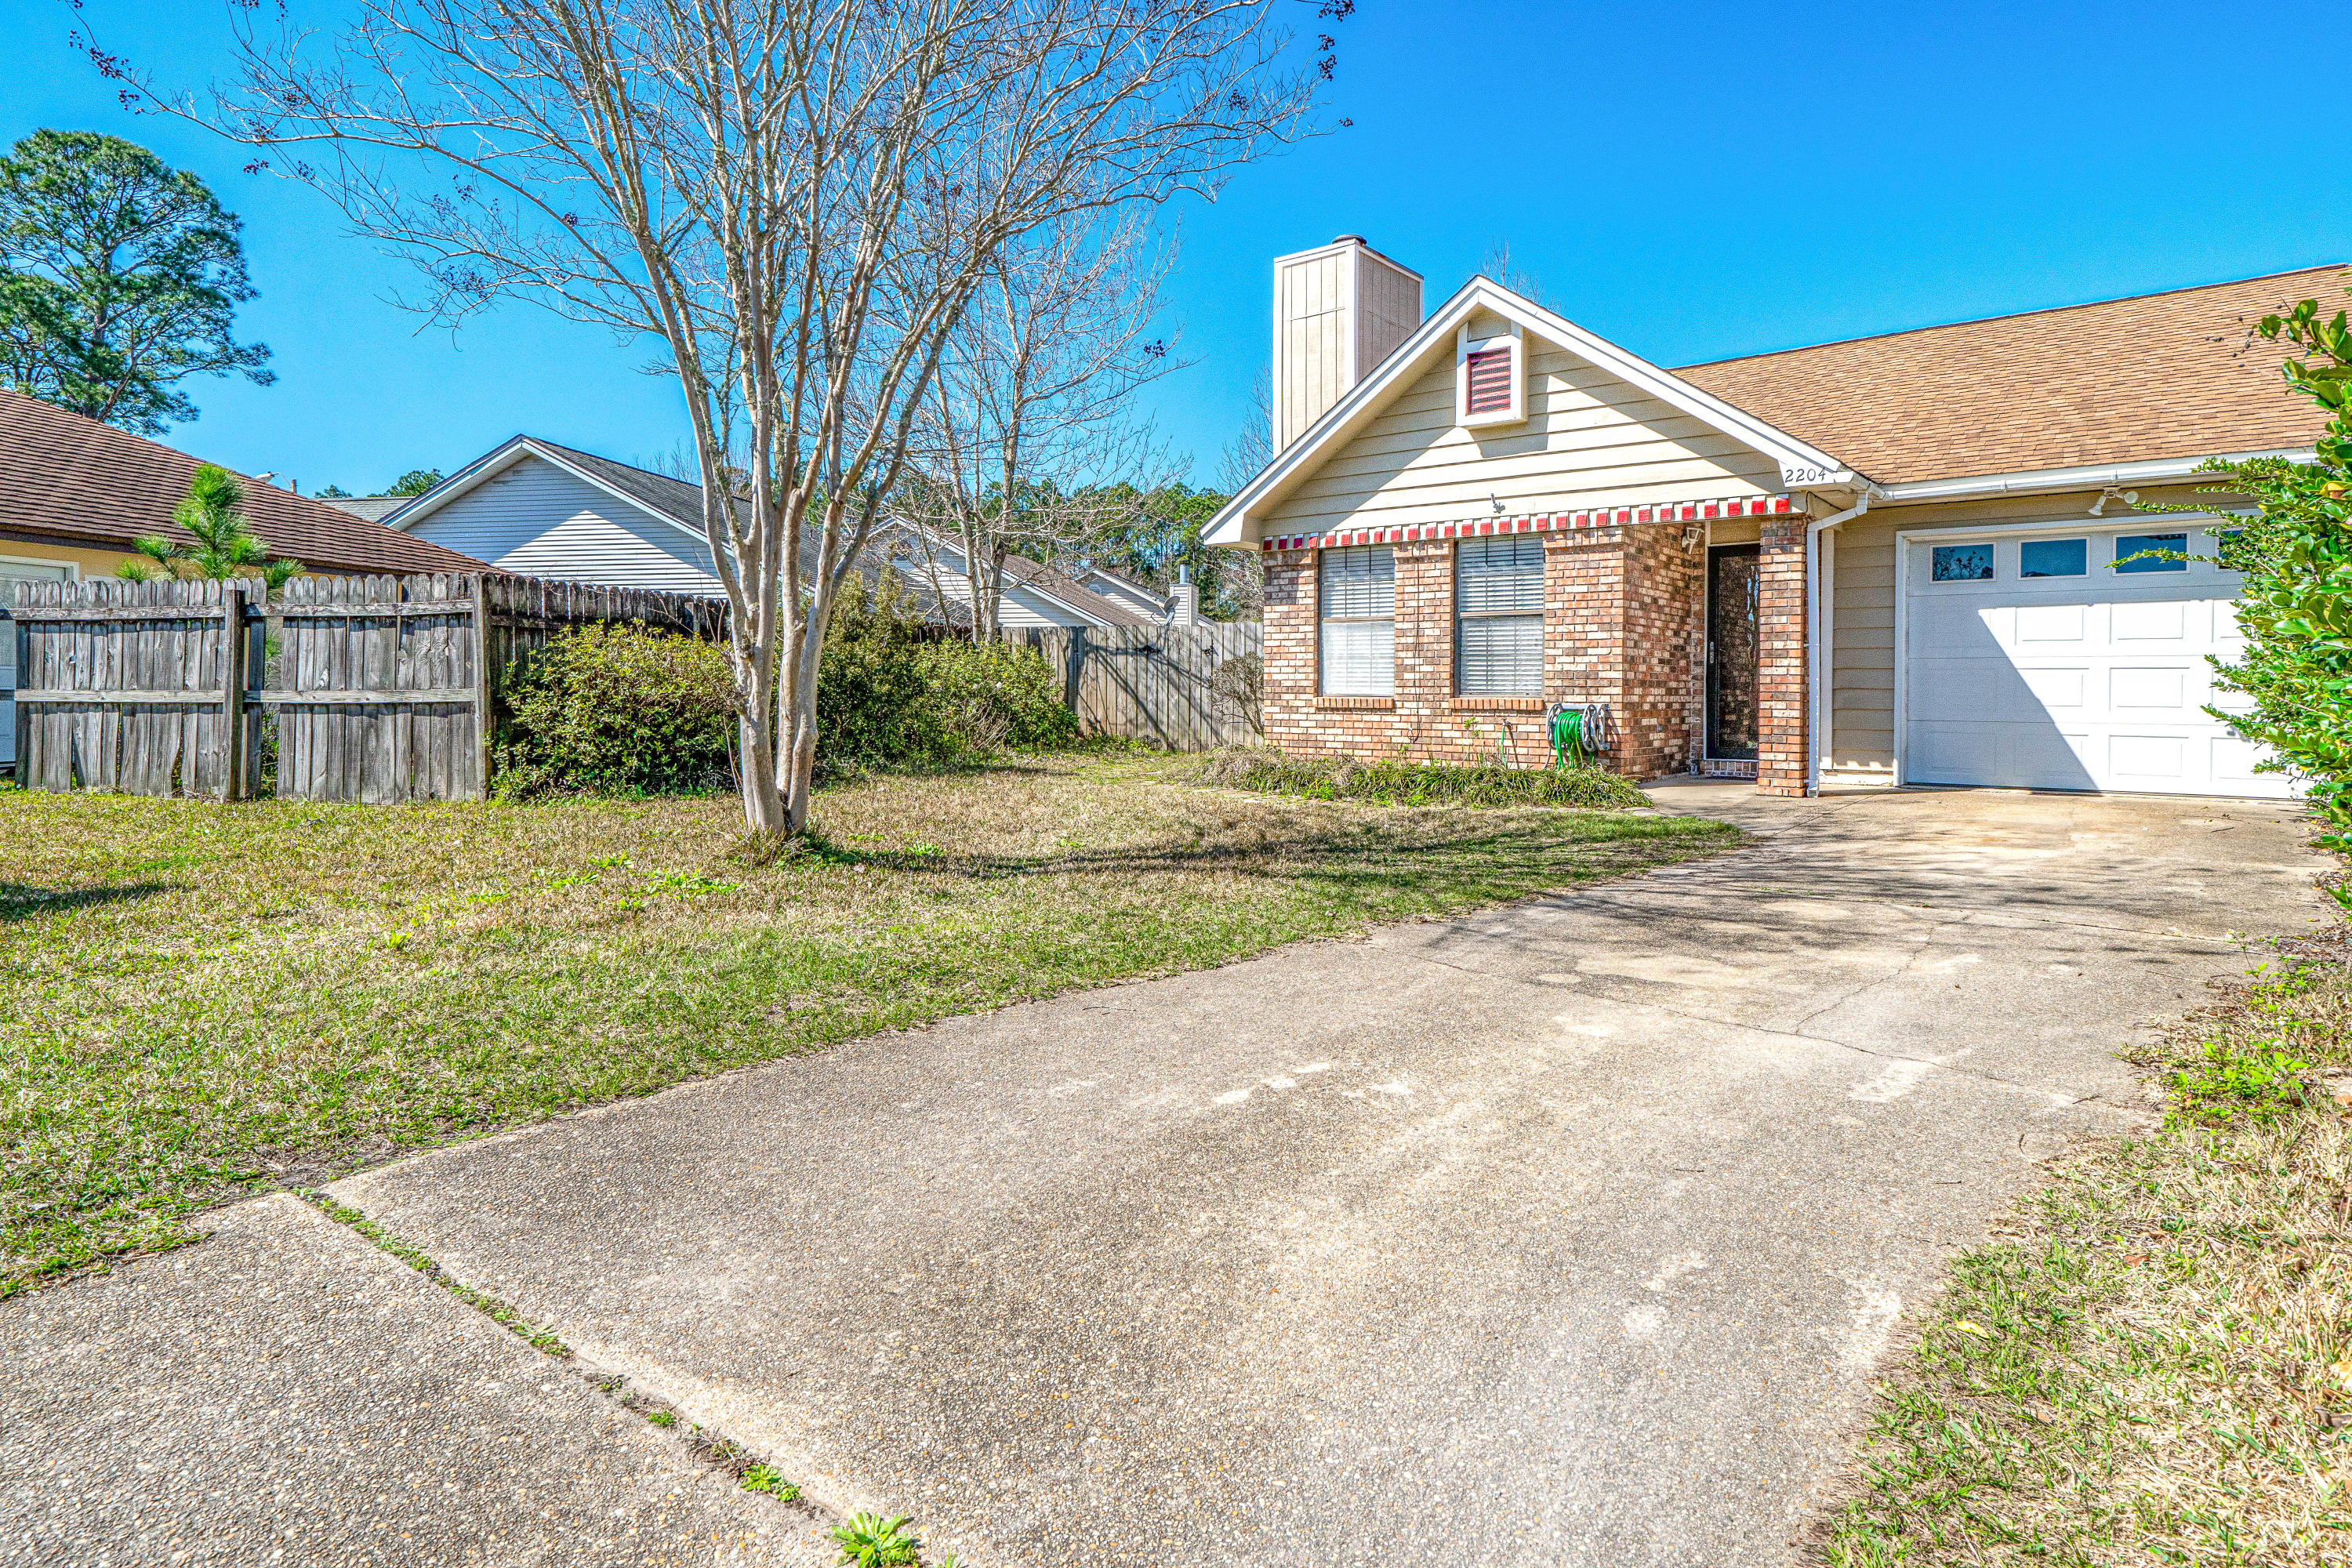 Welcome to this Adorable 3 bedroom 2 bath one car garage  house on a cul de sac. No wasted space in